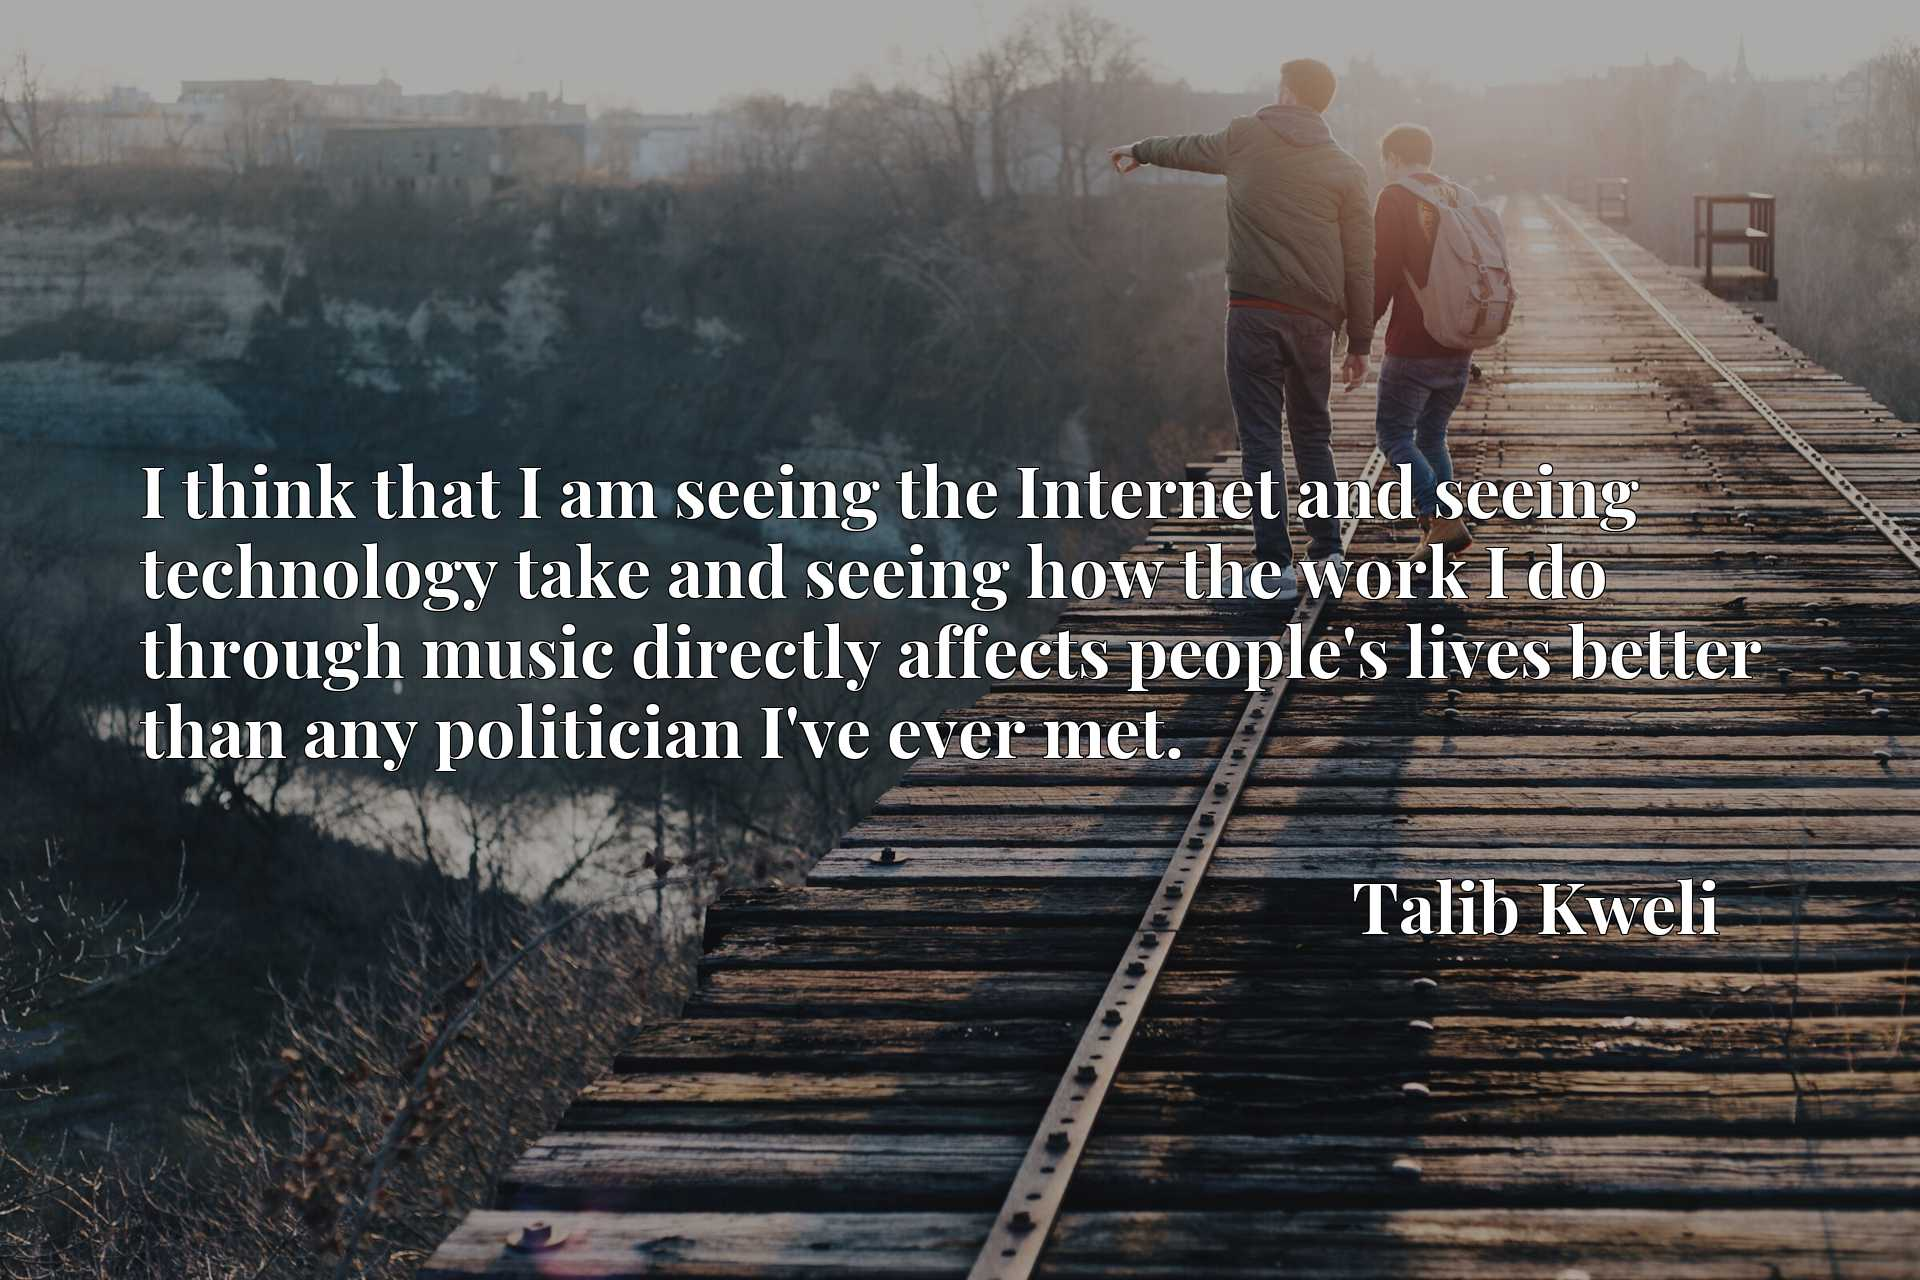 I think that I am seeing the Internet and seeing technology take and seeing how the work I do through music directly affects people's lives better than any politician I've ever met.